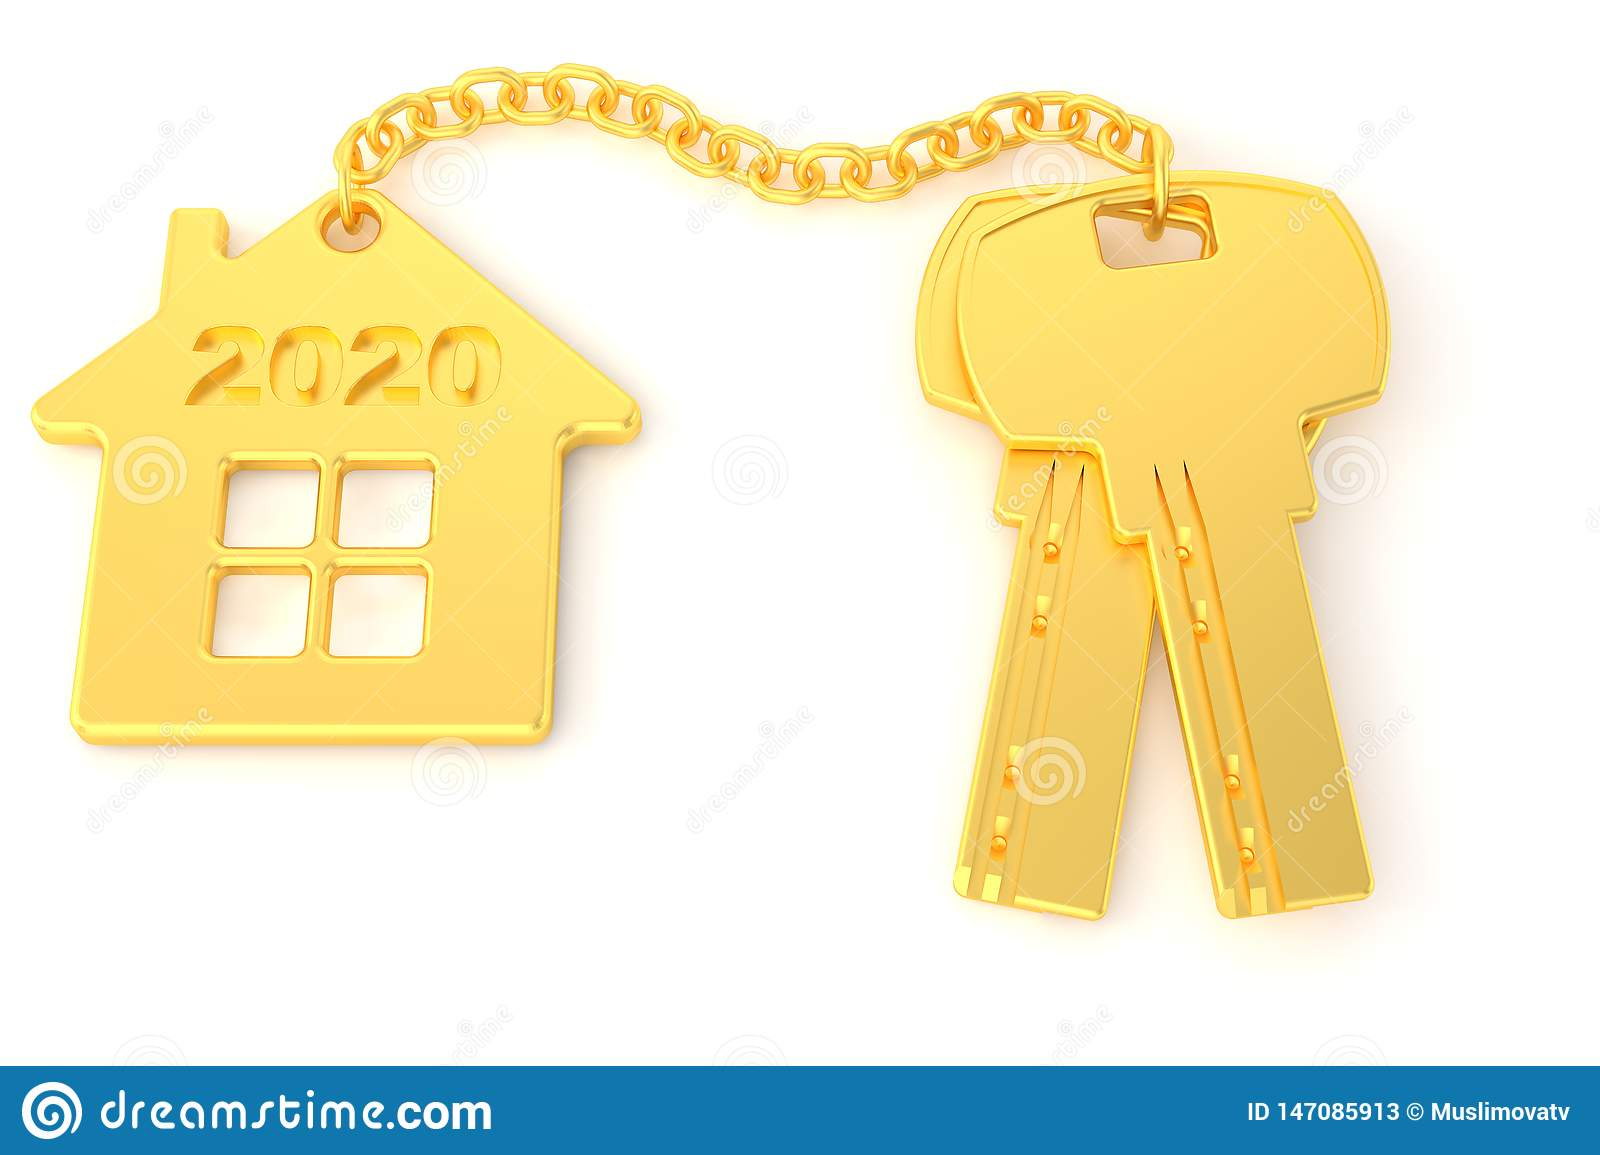 2020. New Year. Golden house keys with golden trinket house isolated on white background. Real estate. 3d rendering. new home